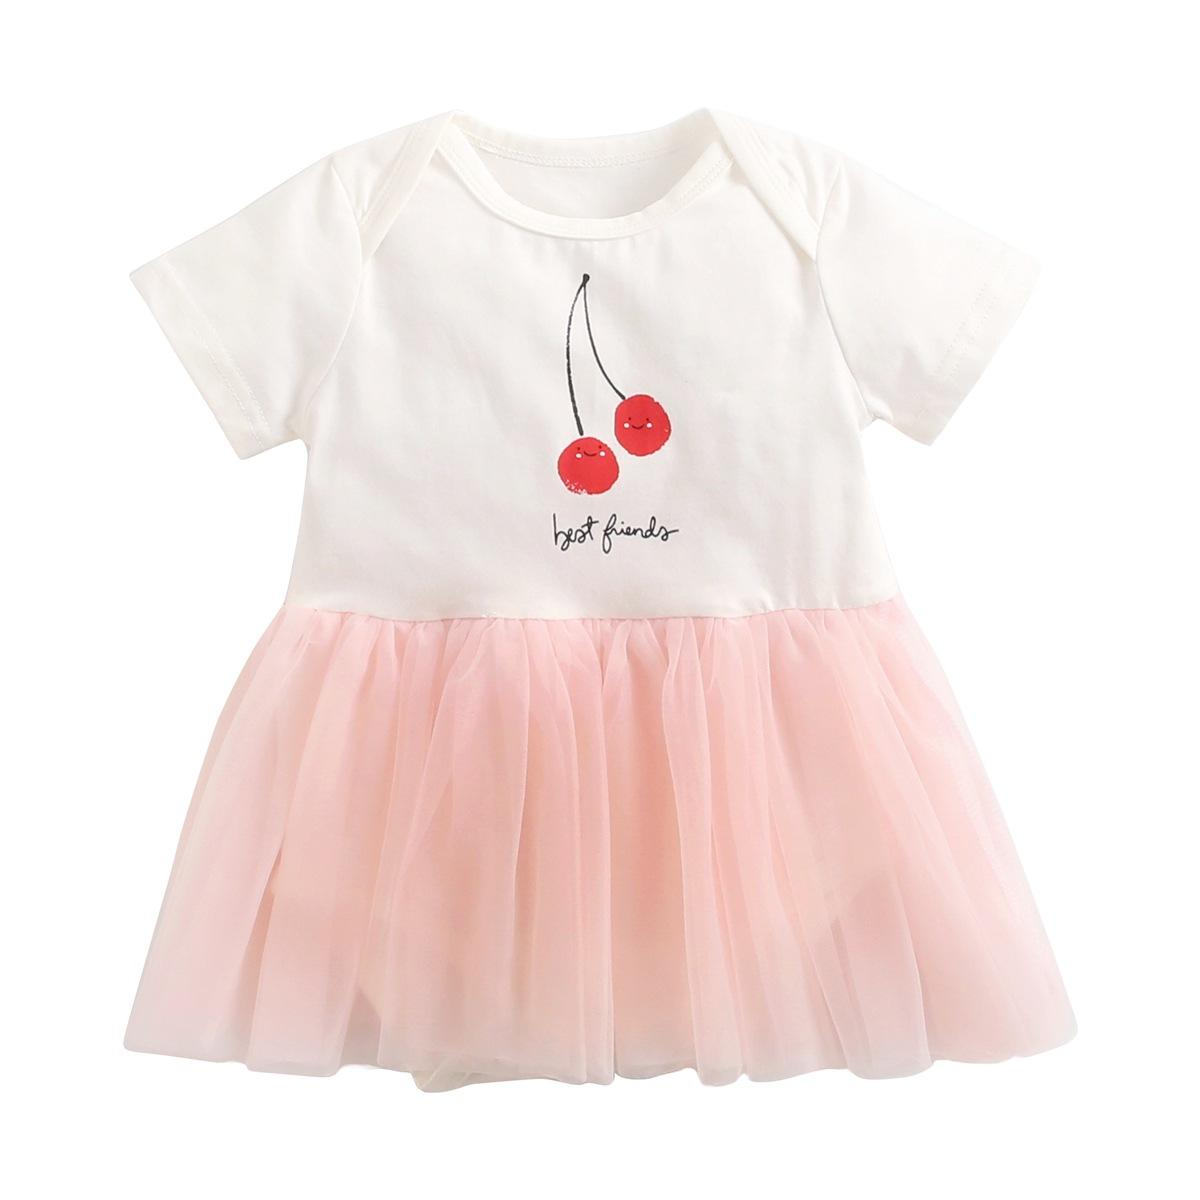 Factory In Stock Discuount Summer Cherry Print Dress Girl Baby Romper